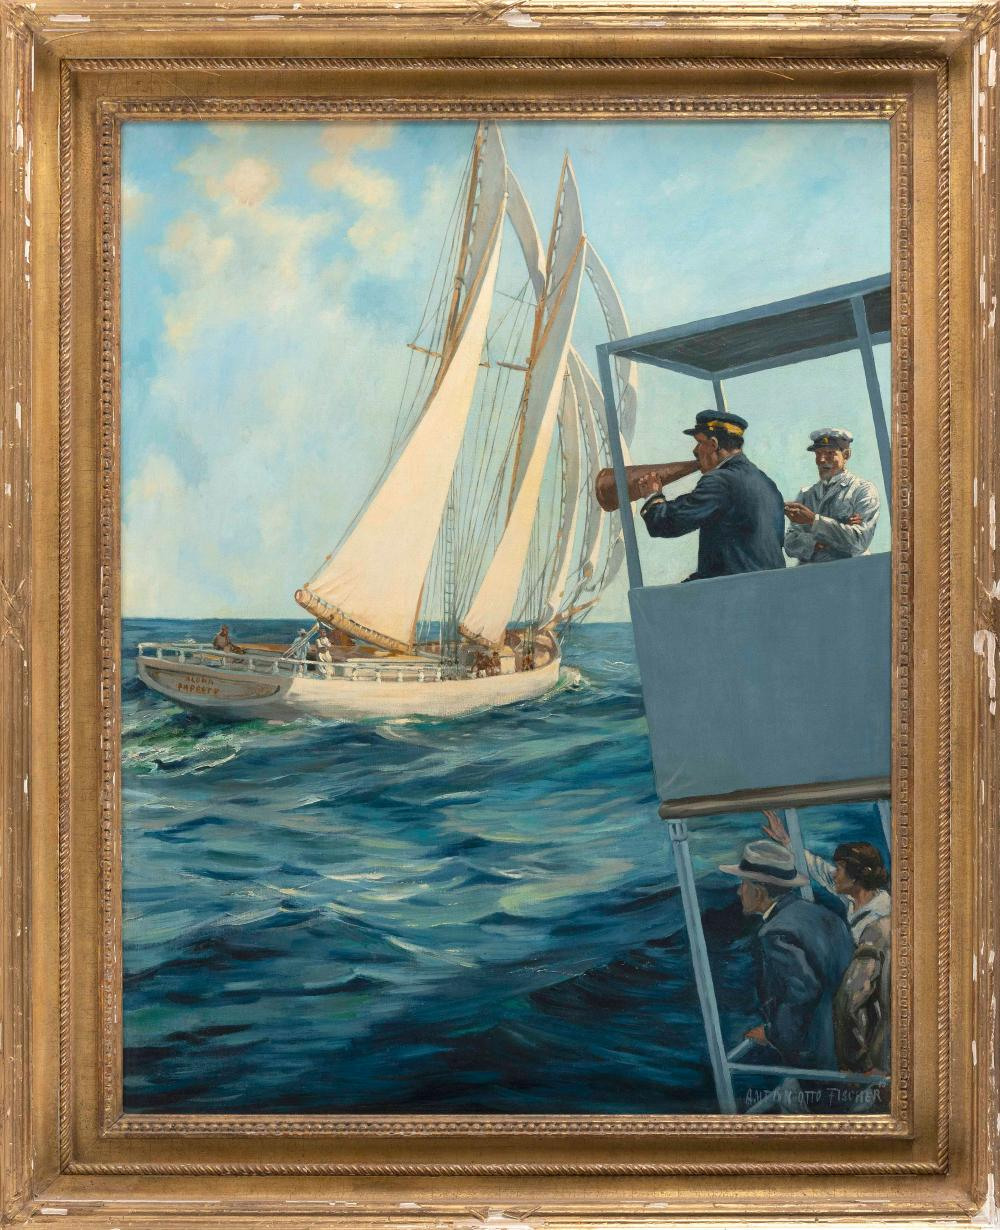 """ANTON OTTO FISCHER , New York/Germany, 1882-1962, Fans and officials watching a yacht race from an observation platform., Signed lower right """"Anton Otto Fischer""""., Oil on canvas, 36"""" x 28"""". Framed 43"""" x 35""""."""